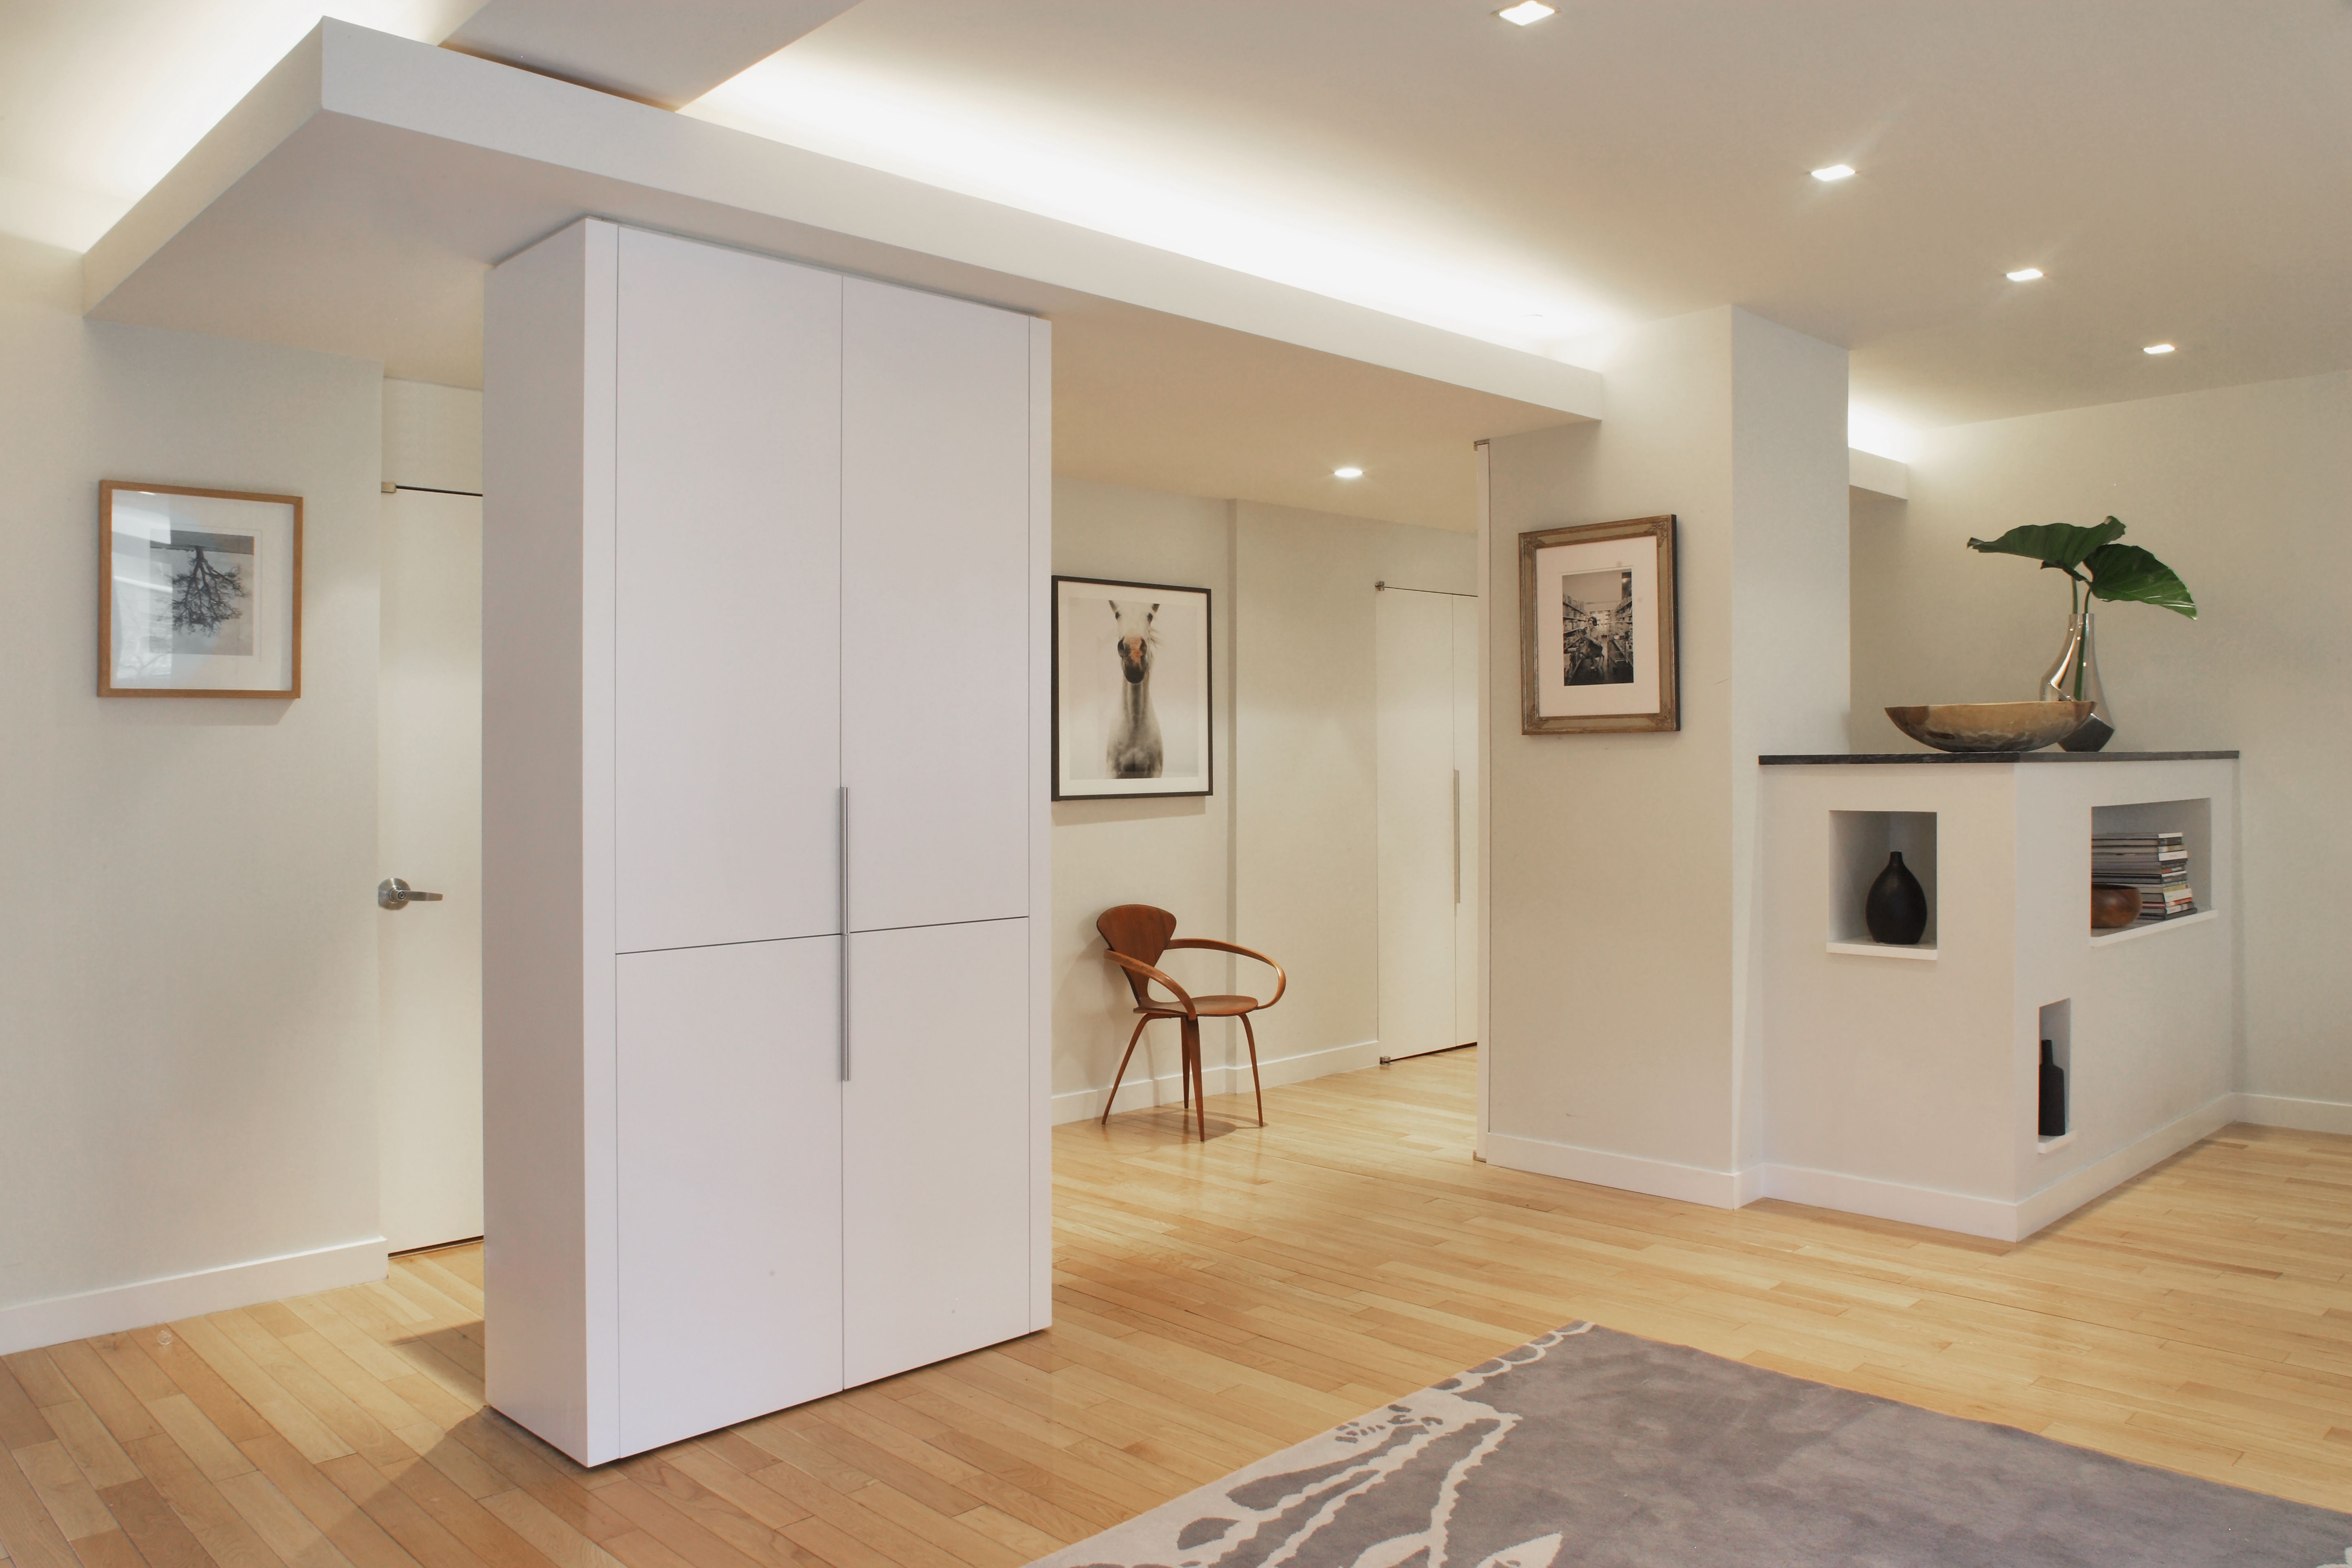 Home Air Conditioner Wiring Color Recessed Lights Pros And Cons